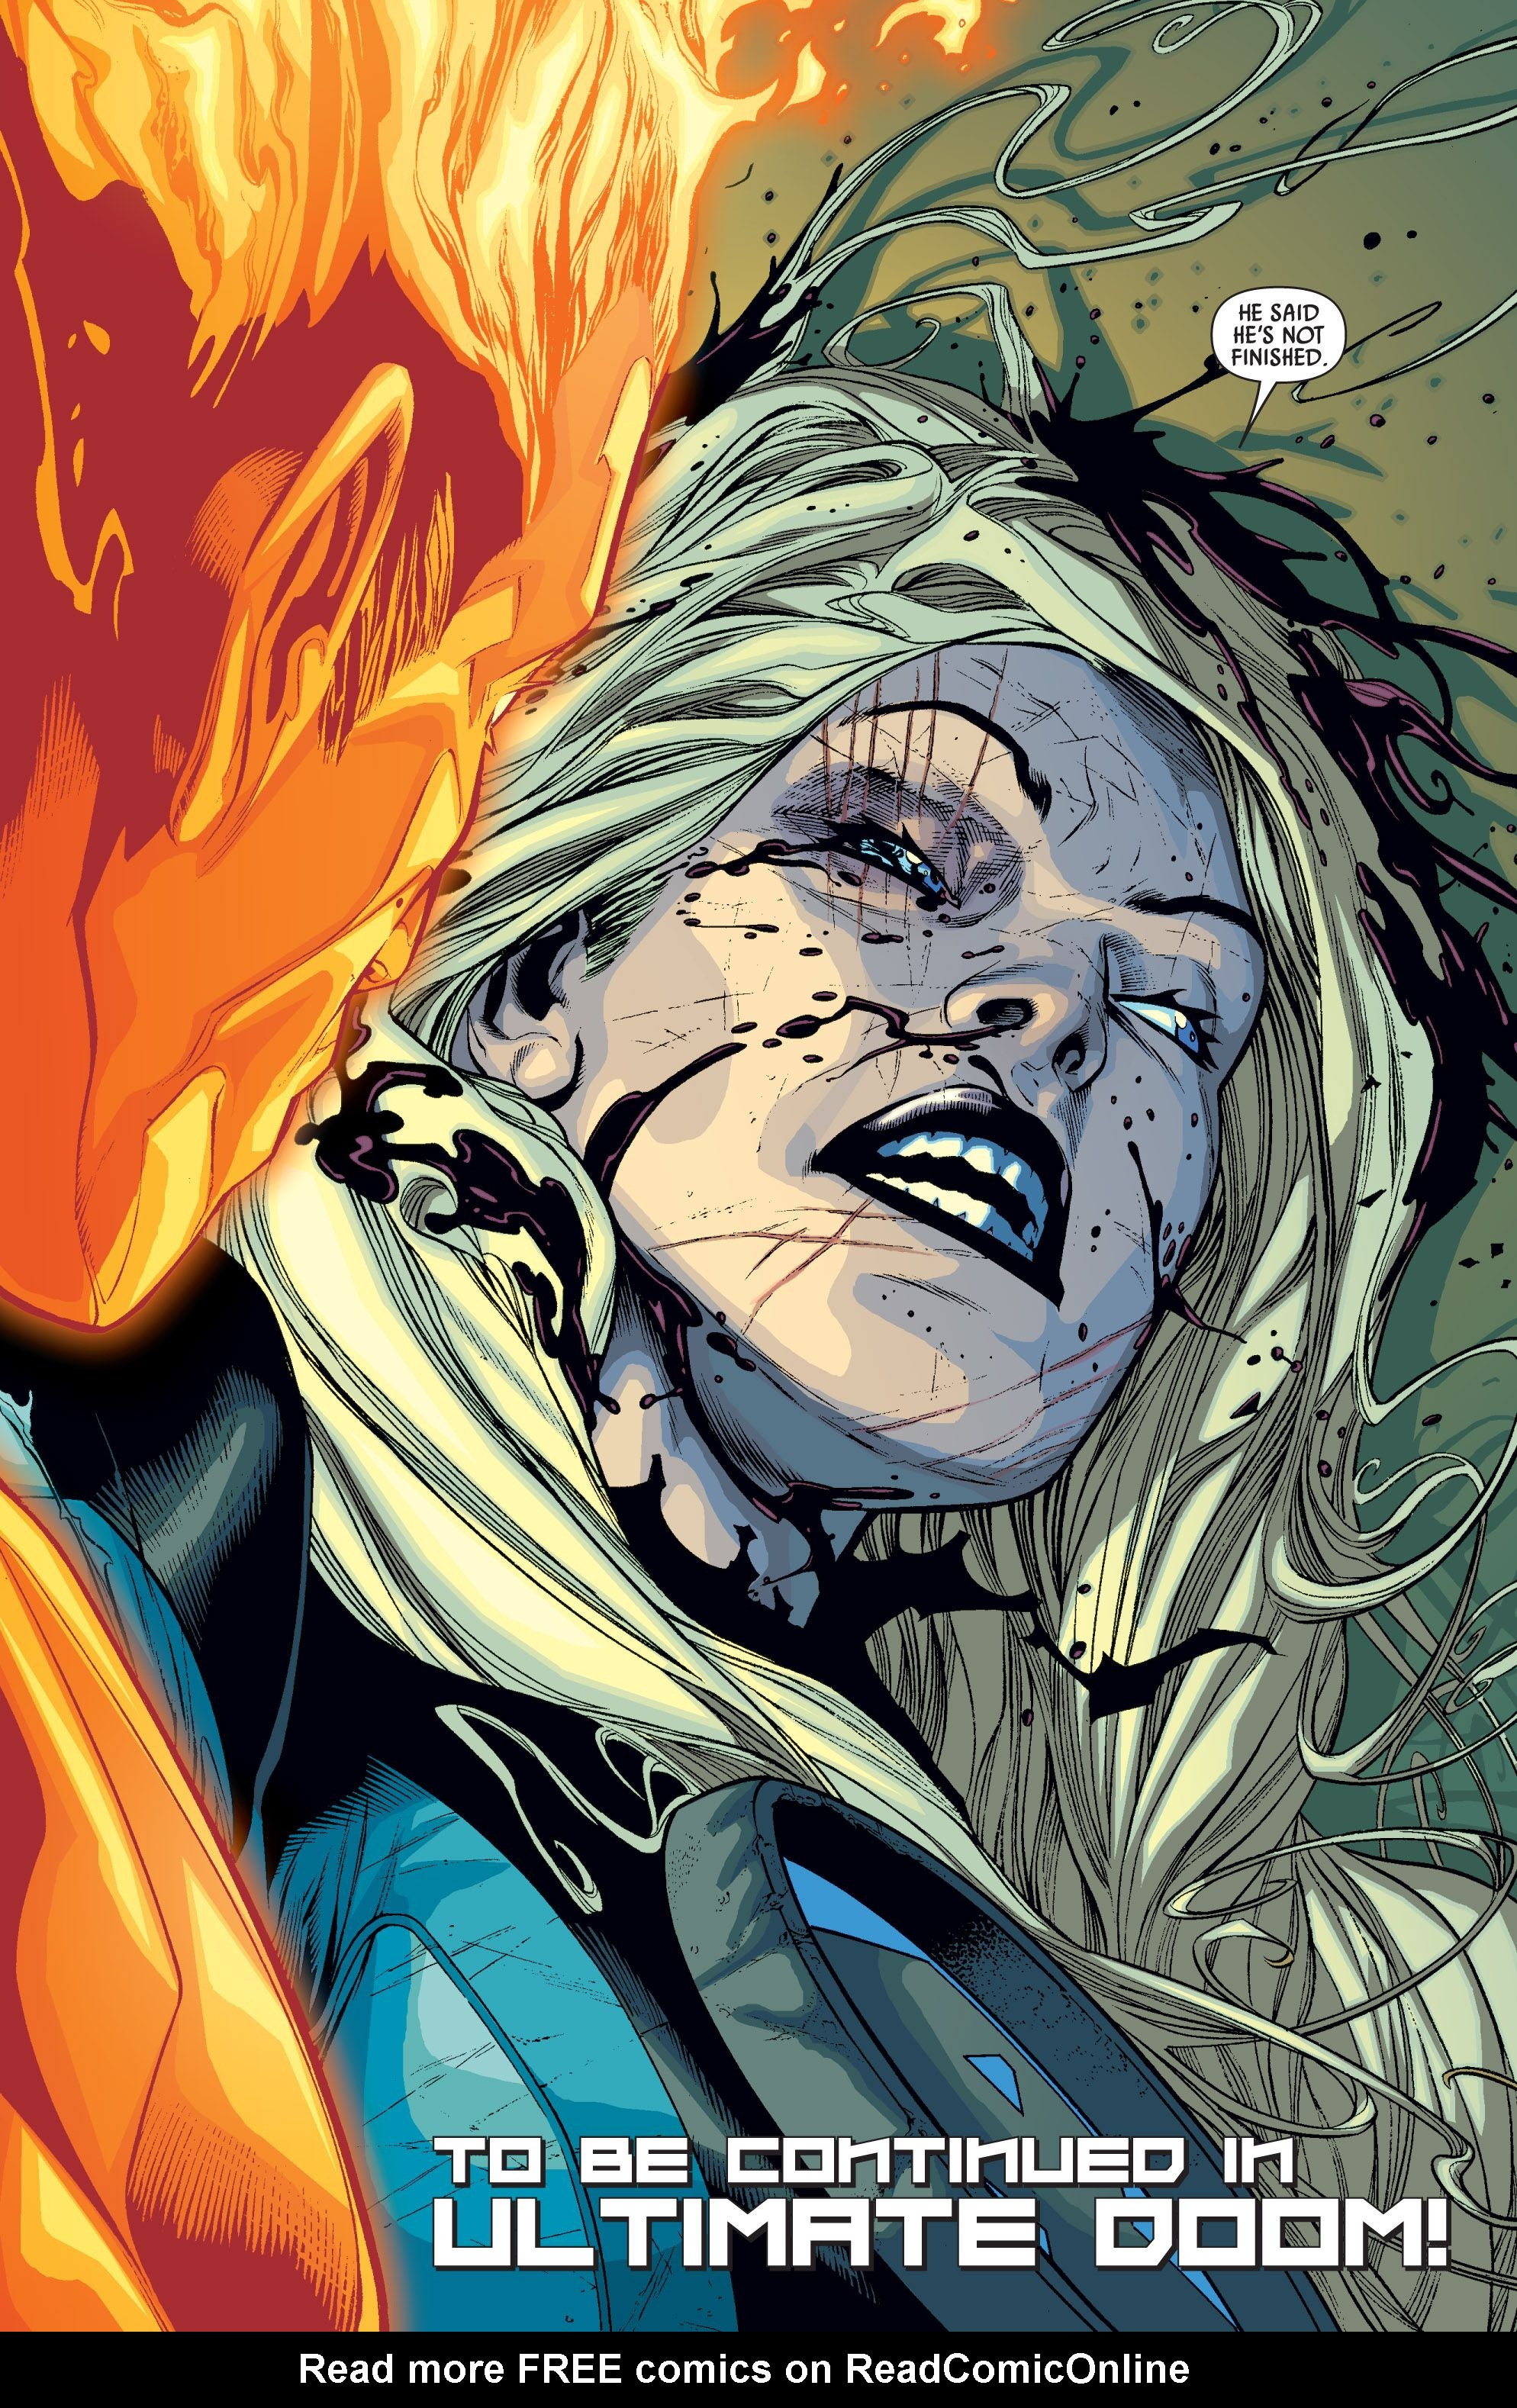 Read online Ultimate Comics Doomsday comic -  Issue # Full - 164